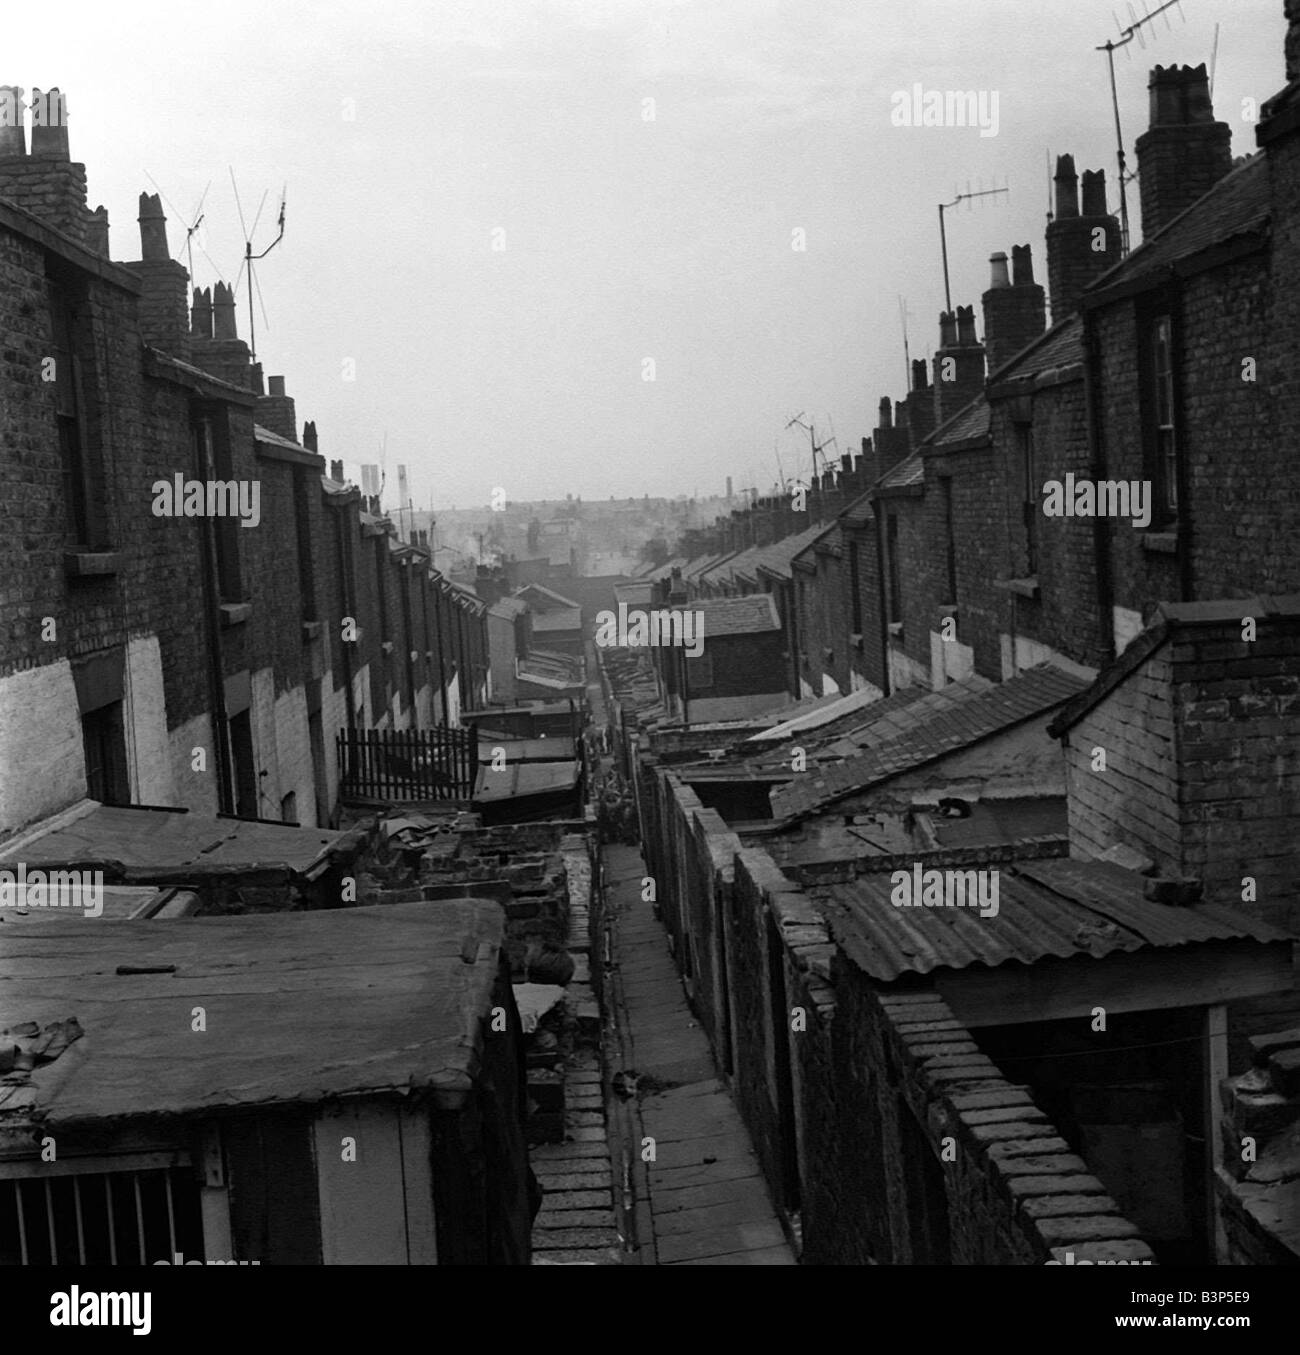 Taken from a set of pictures showing slum housing in post war Britain These pictures were taken to highlight the - Stock Image